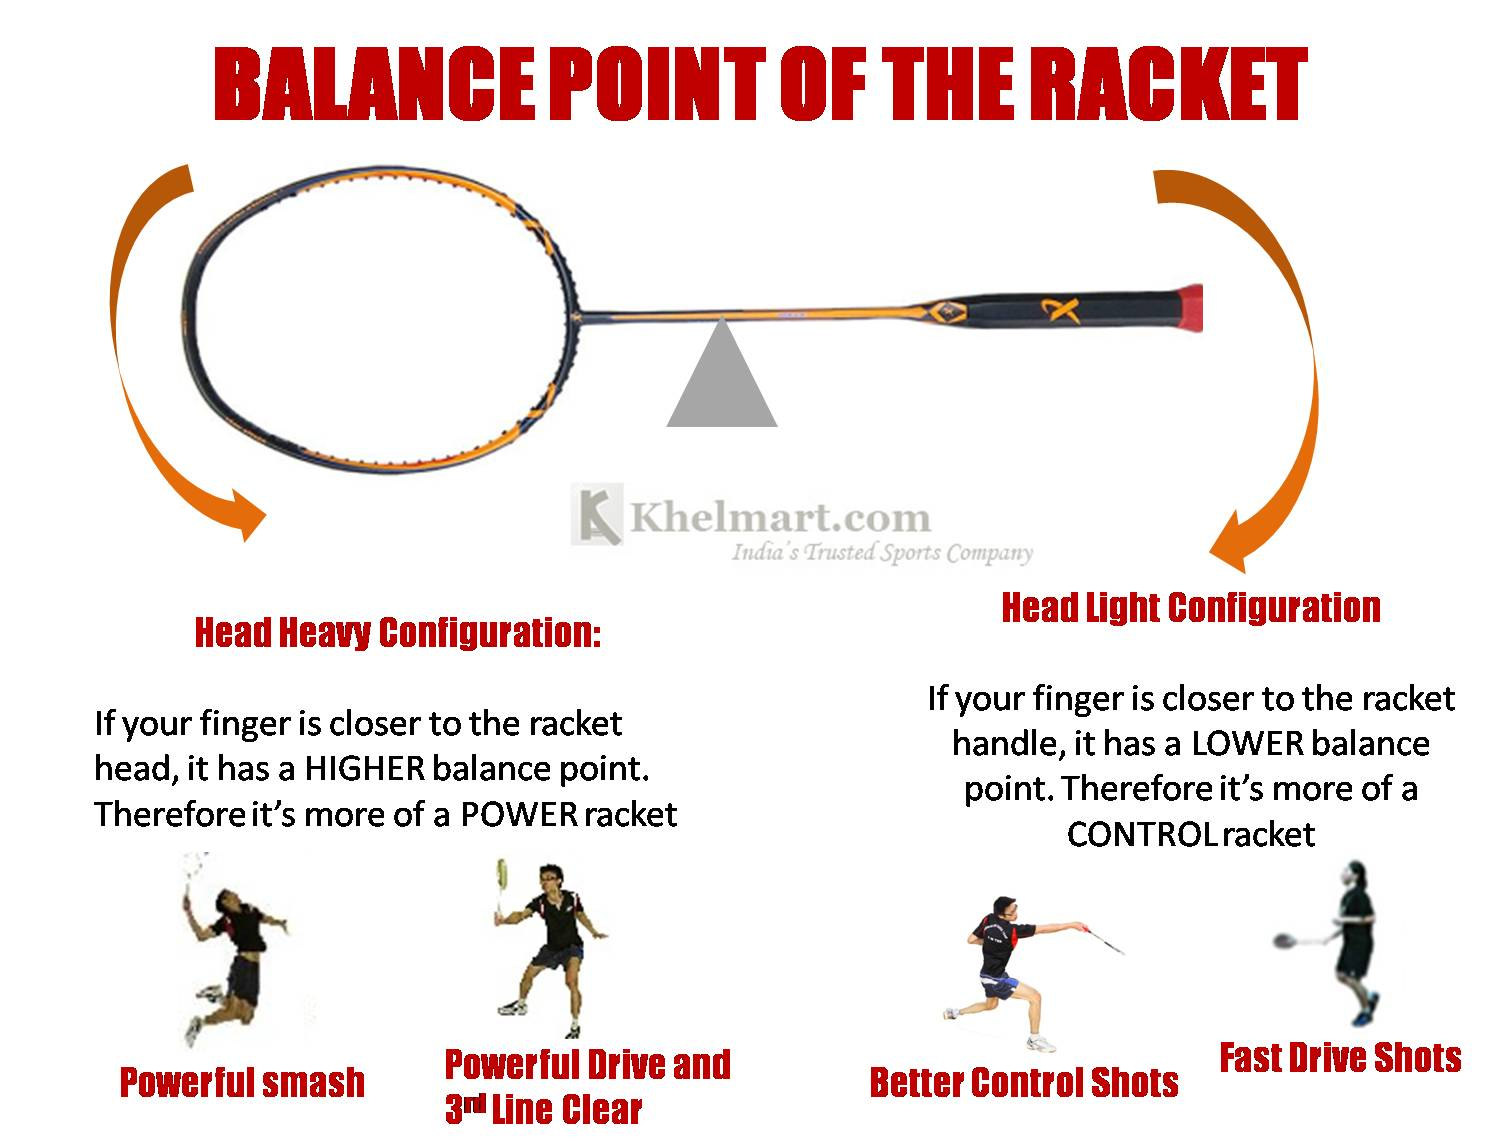 Balance_Point_Badminton_racket_Khelmart_main_concept.jpg